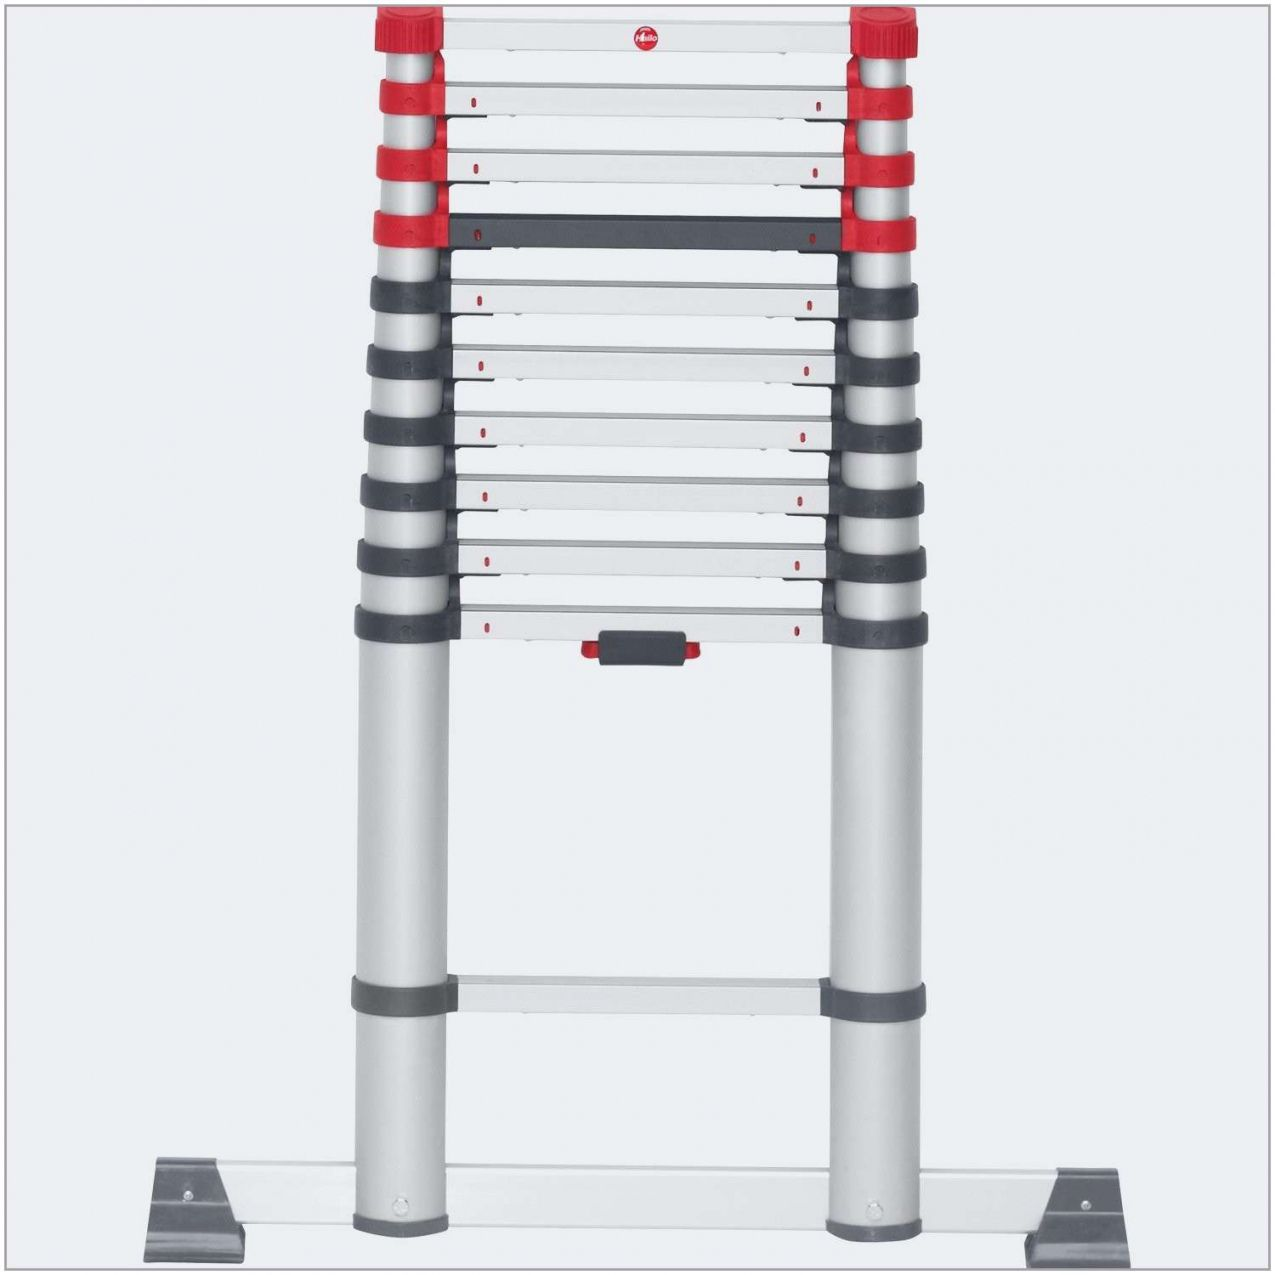 55 Echelle De Couvreur Leroy Merlin 2019 Check More At Https Www Unionjacktrooper Com 201 Echelle De Couvreur Leroy Merlin 2017 Golf Clubs Aluminium Ladder